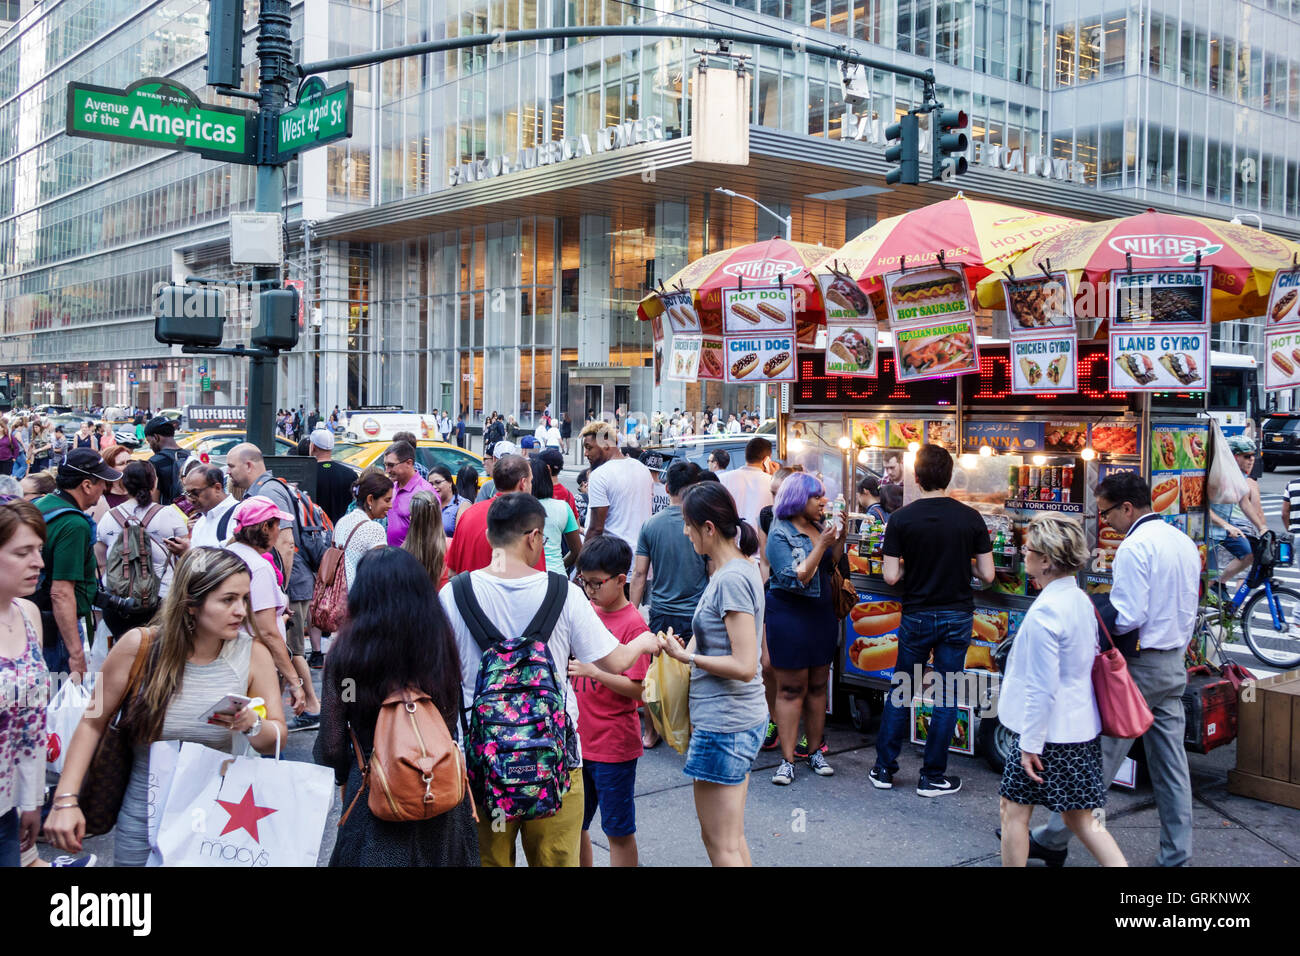 Image result for sixth street with hotdog stand